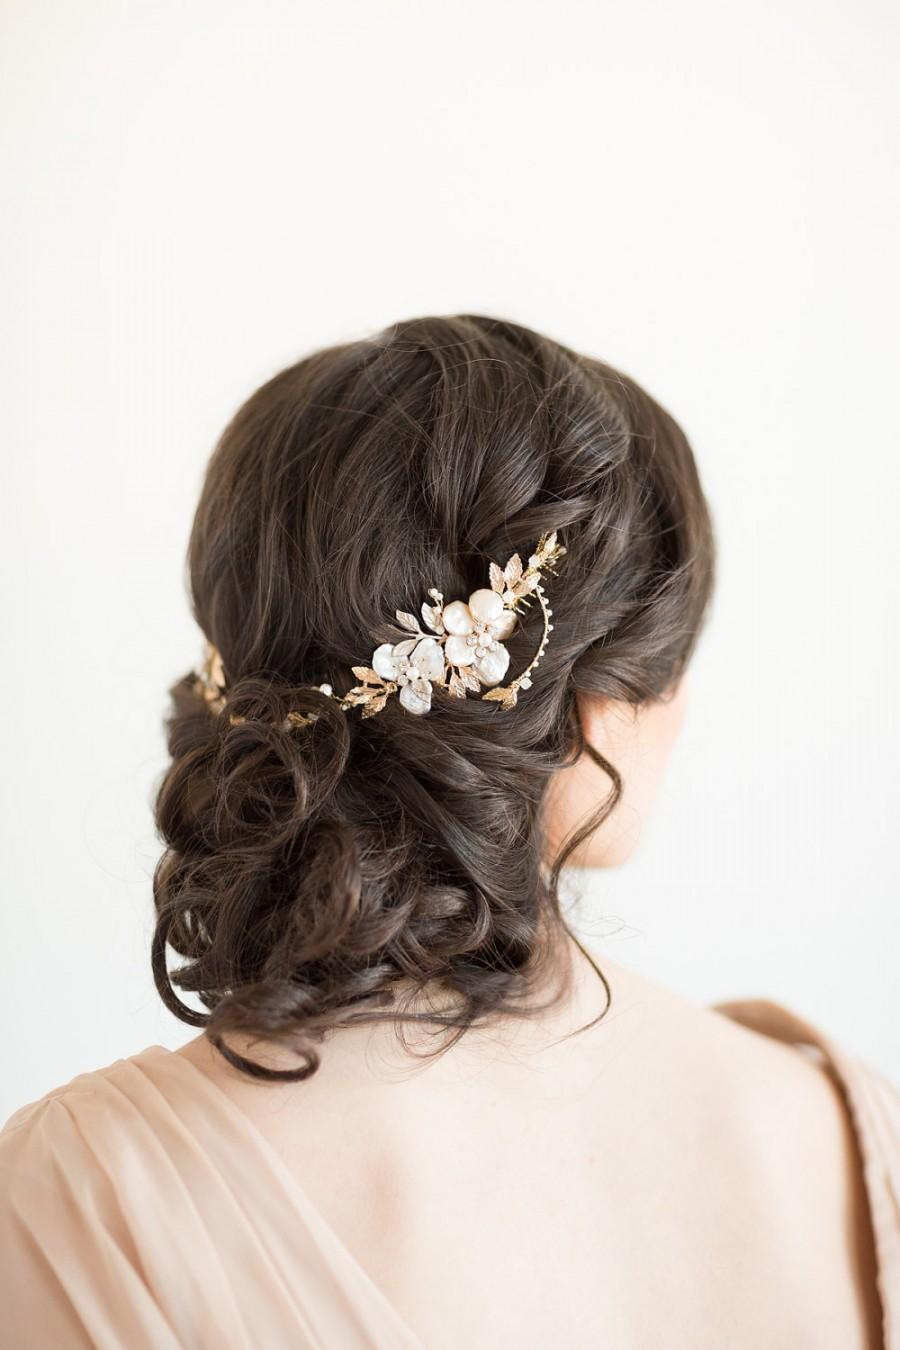 Mariage - Bridal Hair Accessory,  Crystal Hair Swag, Wedding Hair Vine